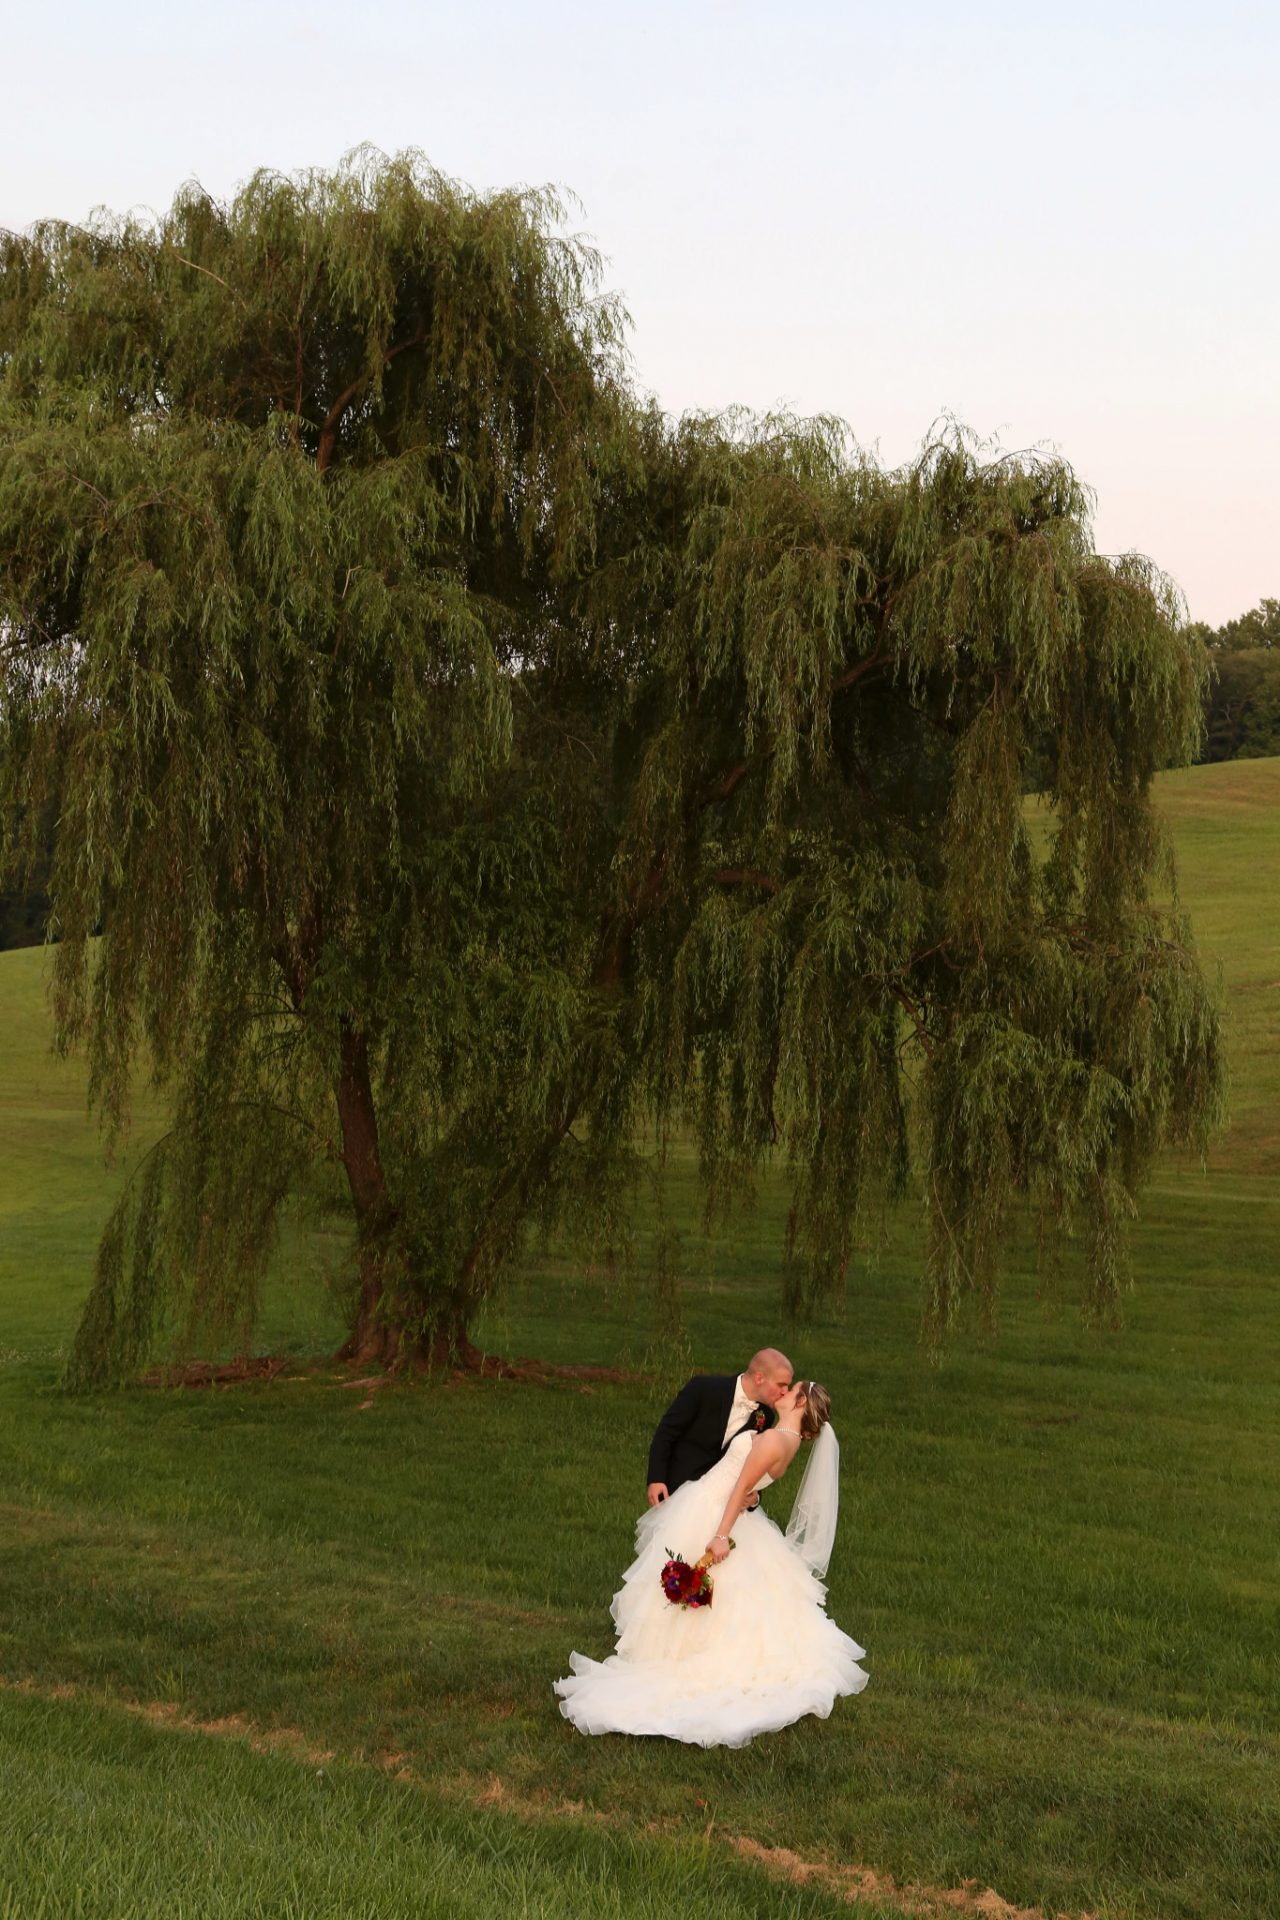 Bride and groom pose beside old willow tree after their wedding